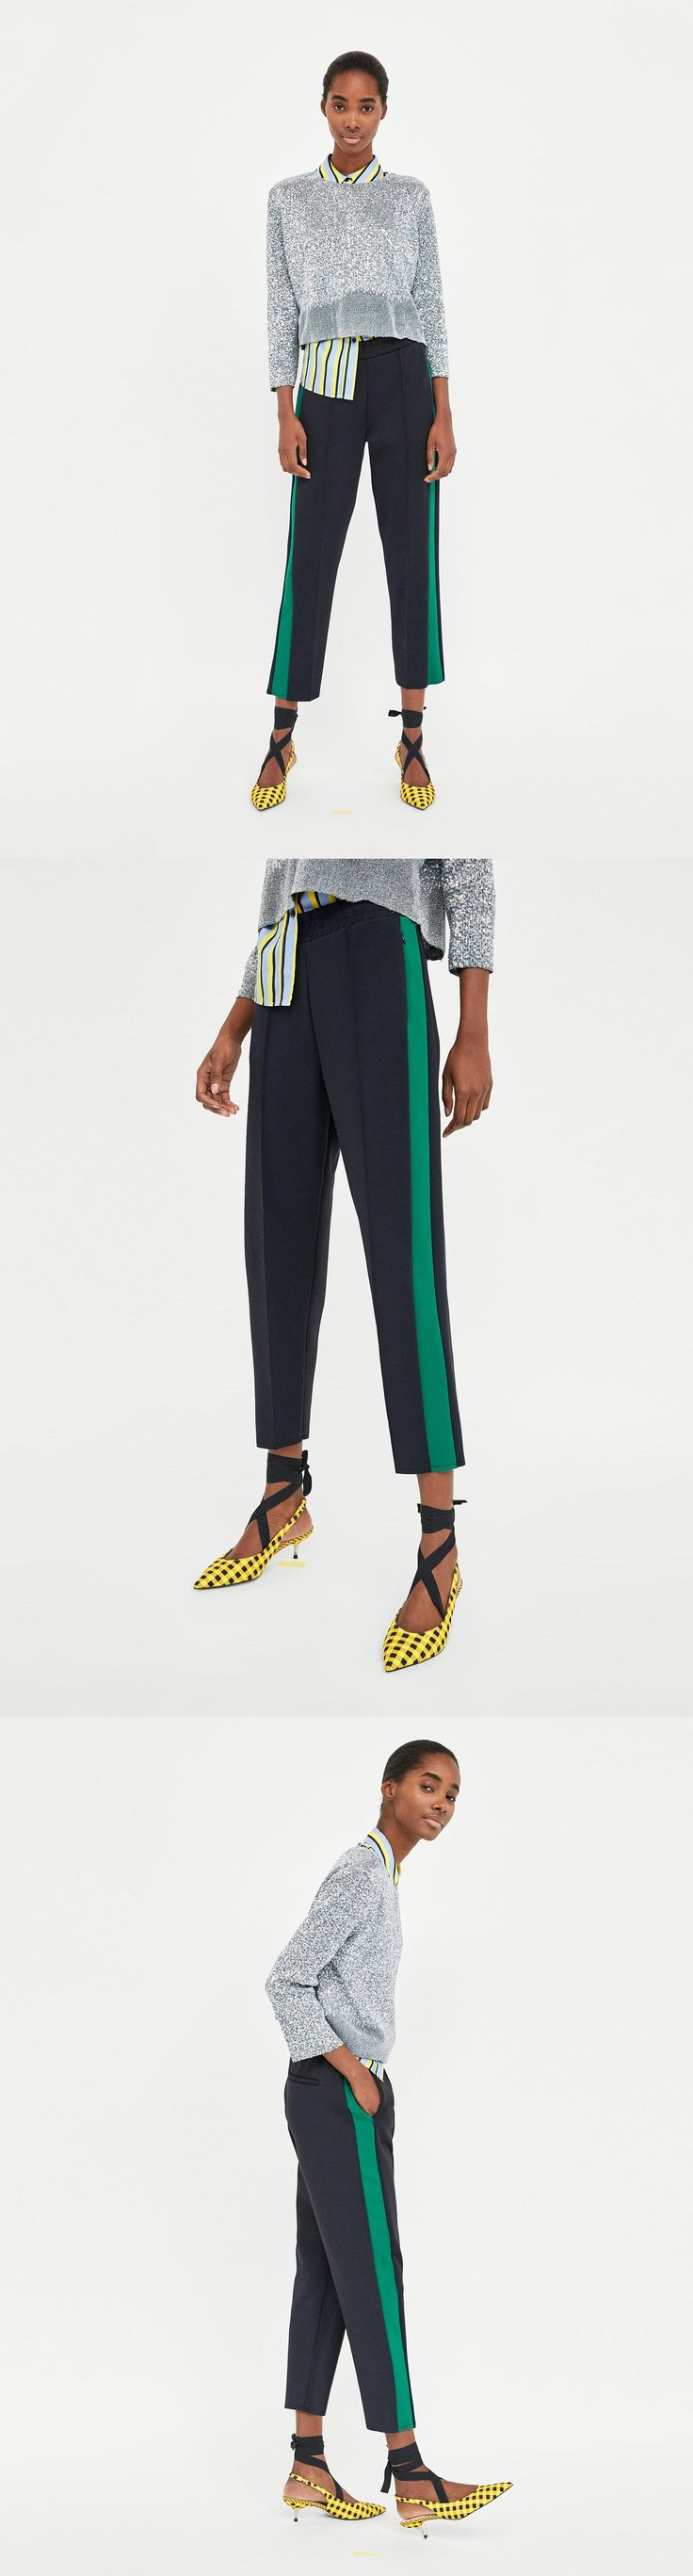 Jogging Trousers With Side Stripes // 49.90 USD // Zara // Trousers with elastic waistband with contrasting stripe detail and front zip pockets. HEIGHT OF MODEL: 179 CM / 5′ 10″